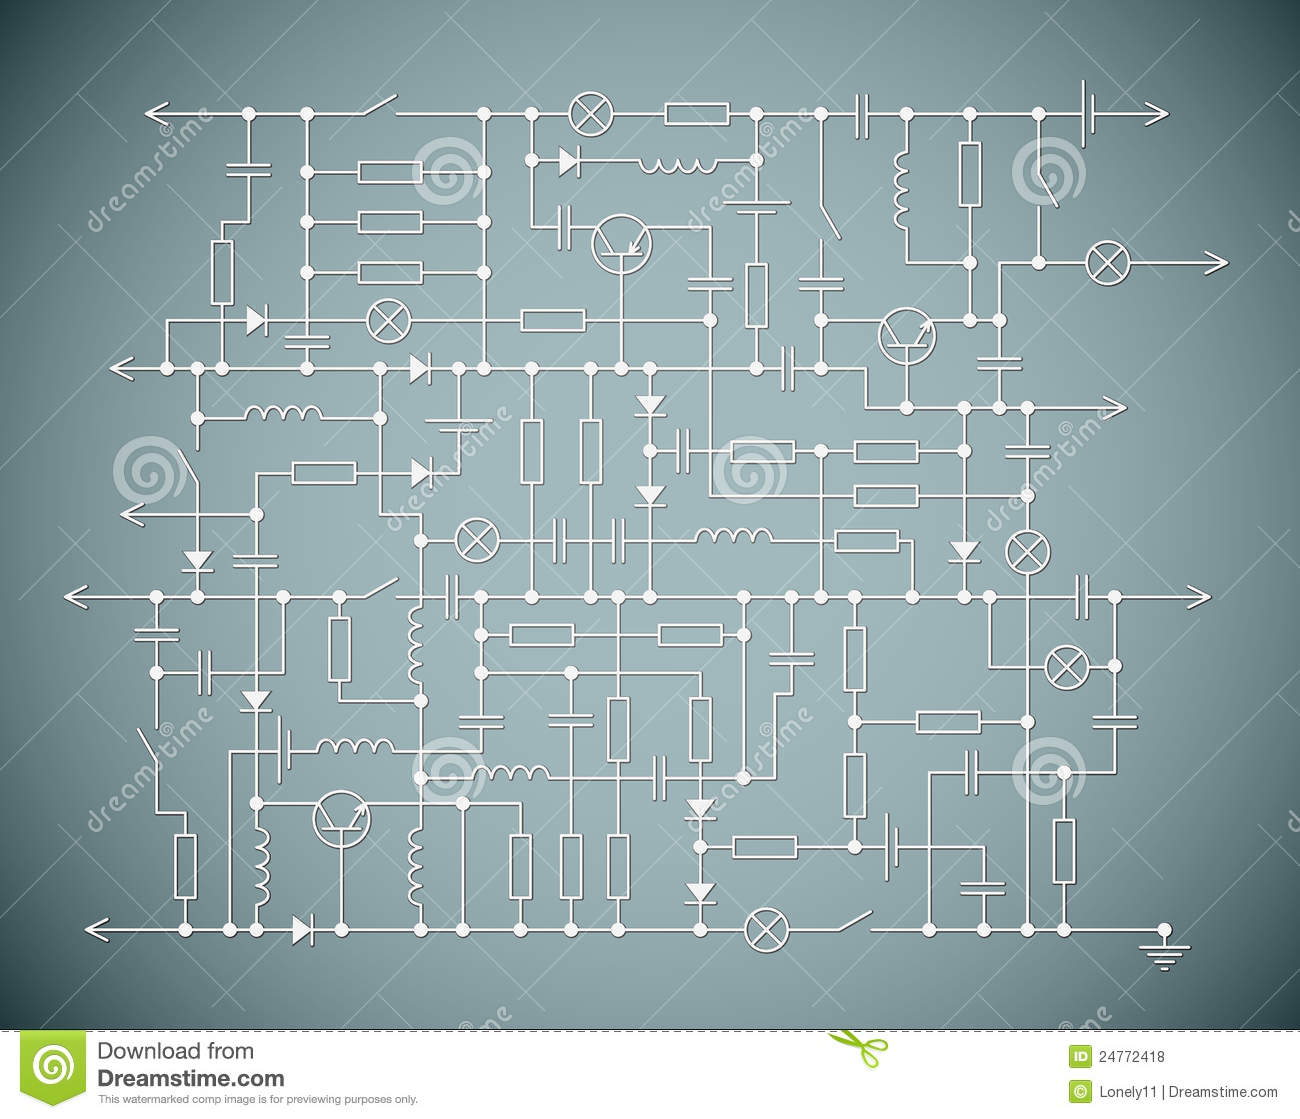 Free Drawing Circuit Diagram License Lgpl Electronic Projects